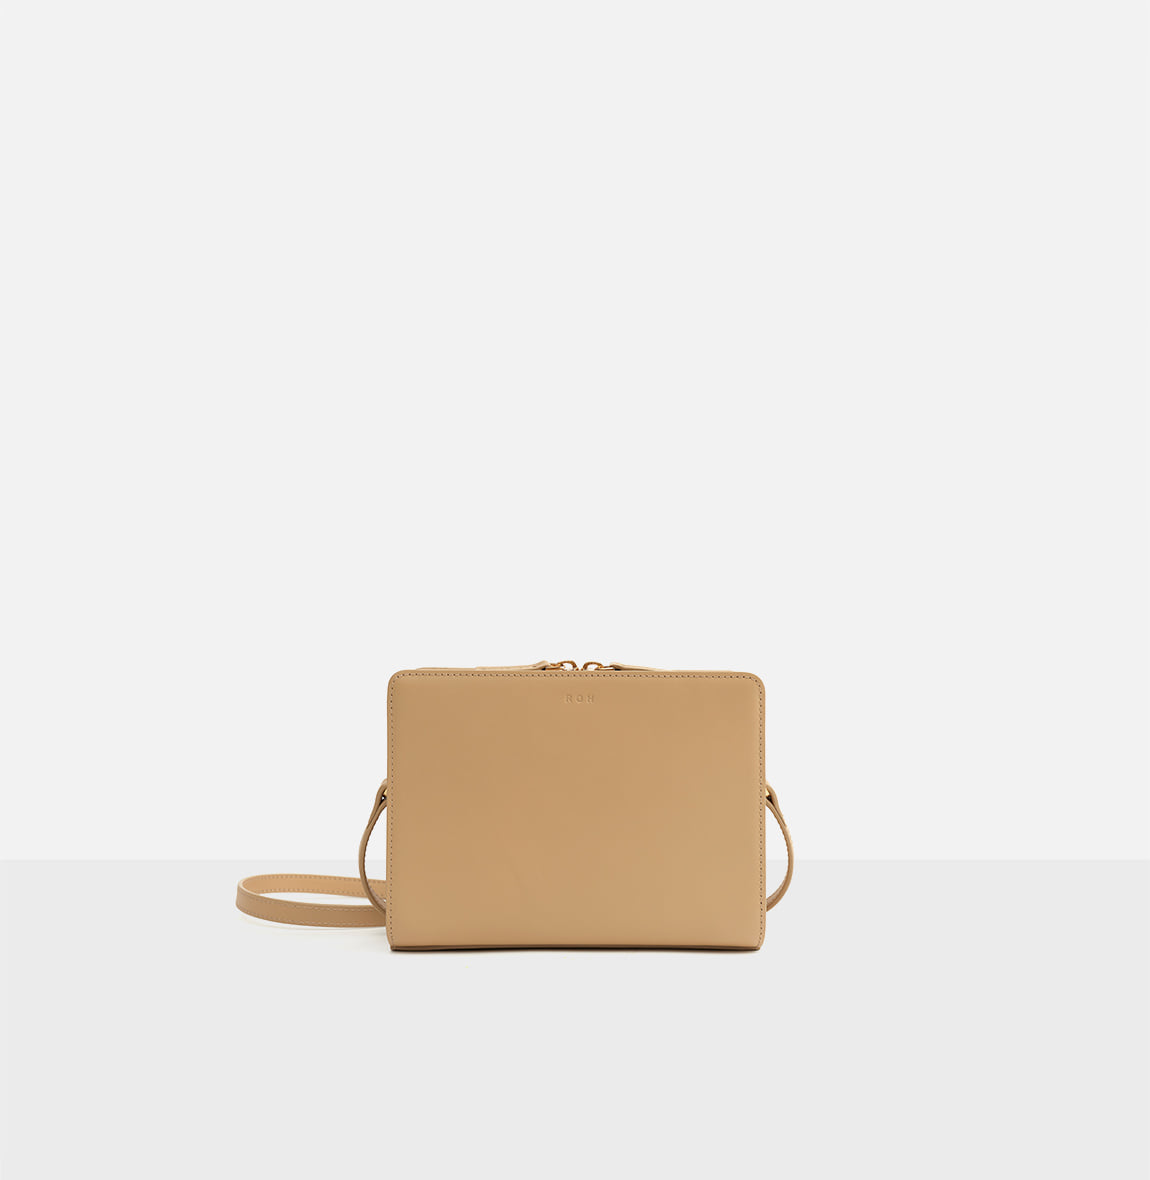 ROH Mini square bag Light ocher